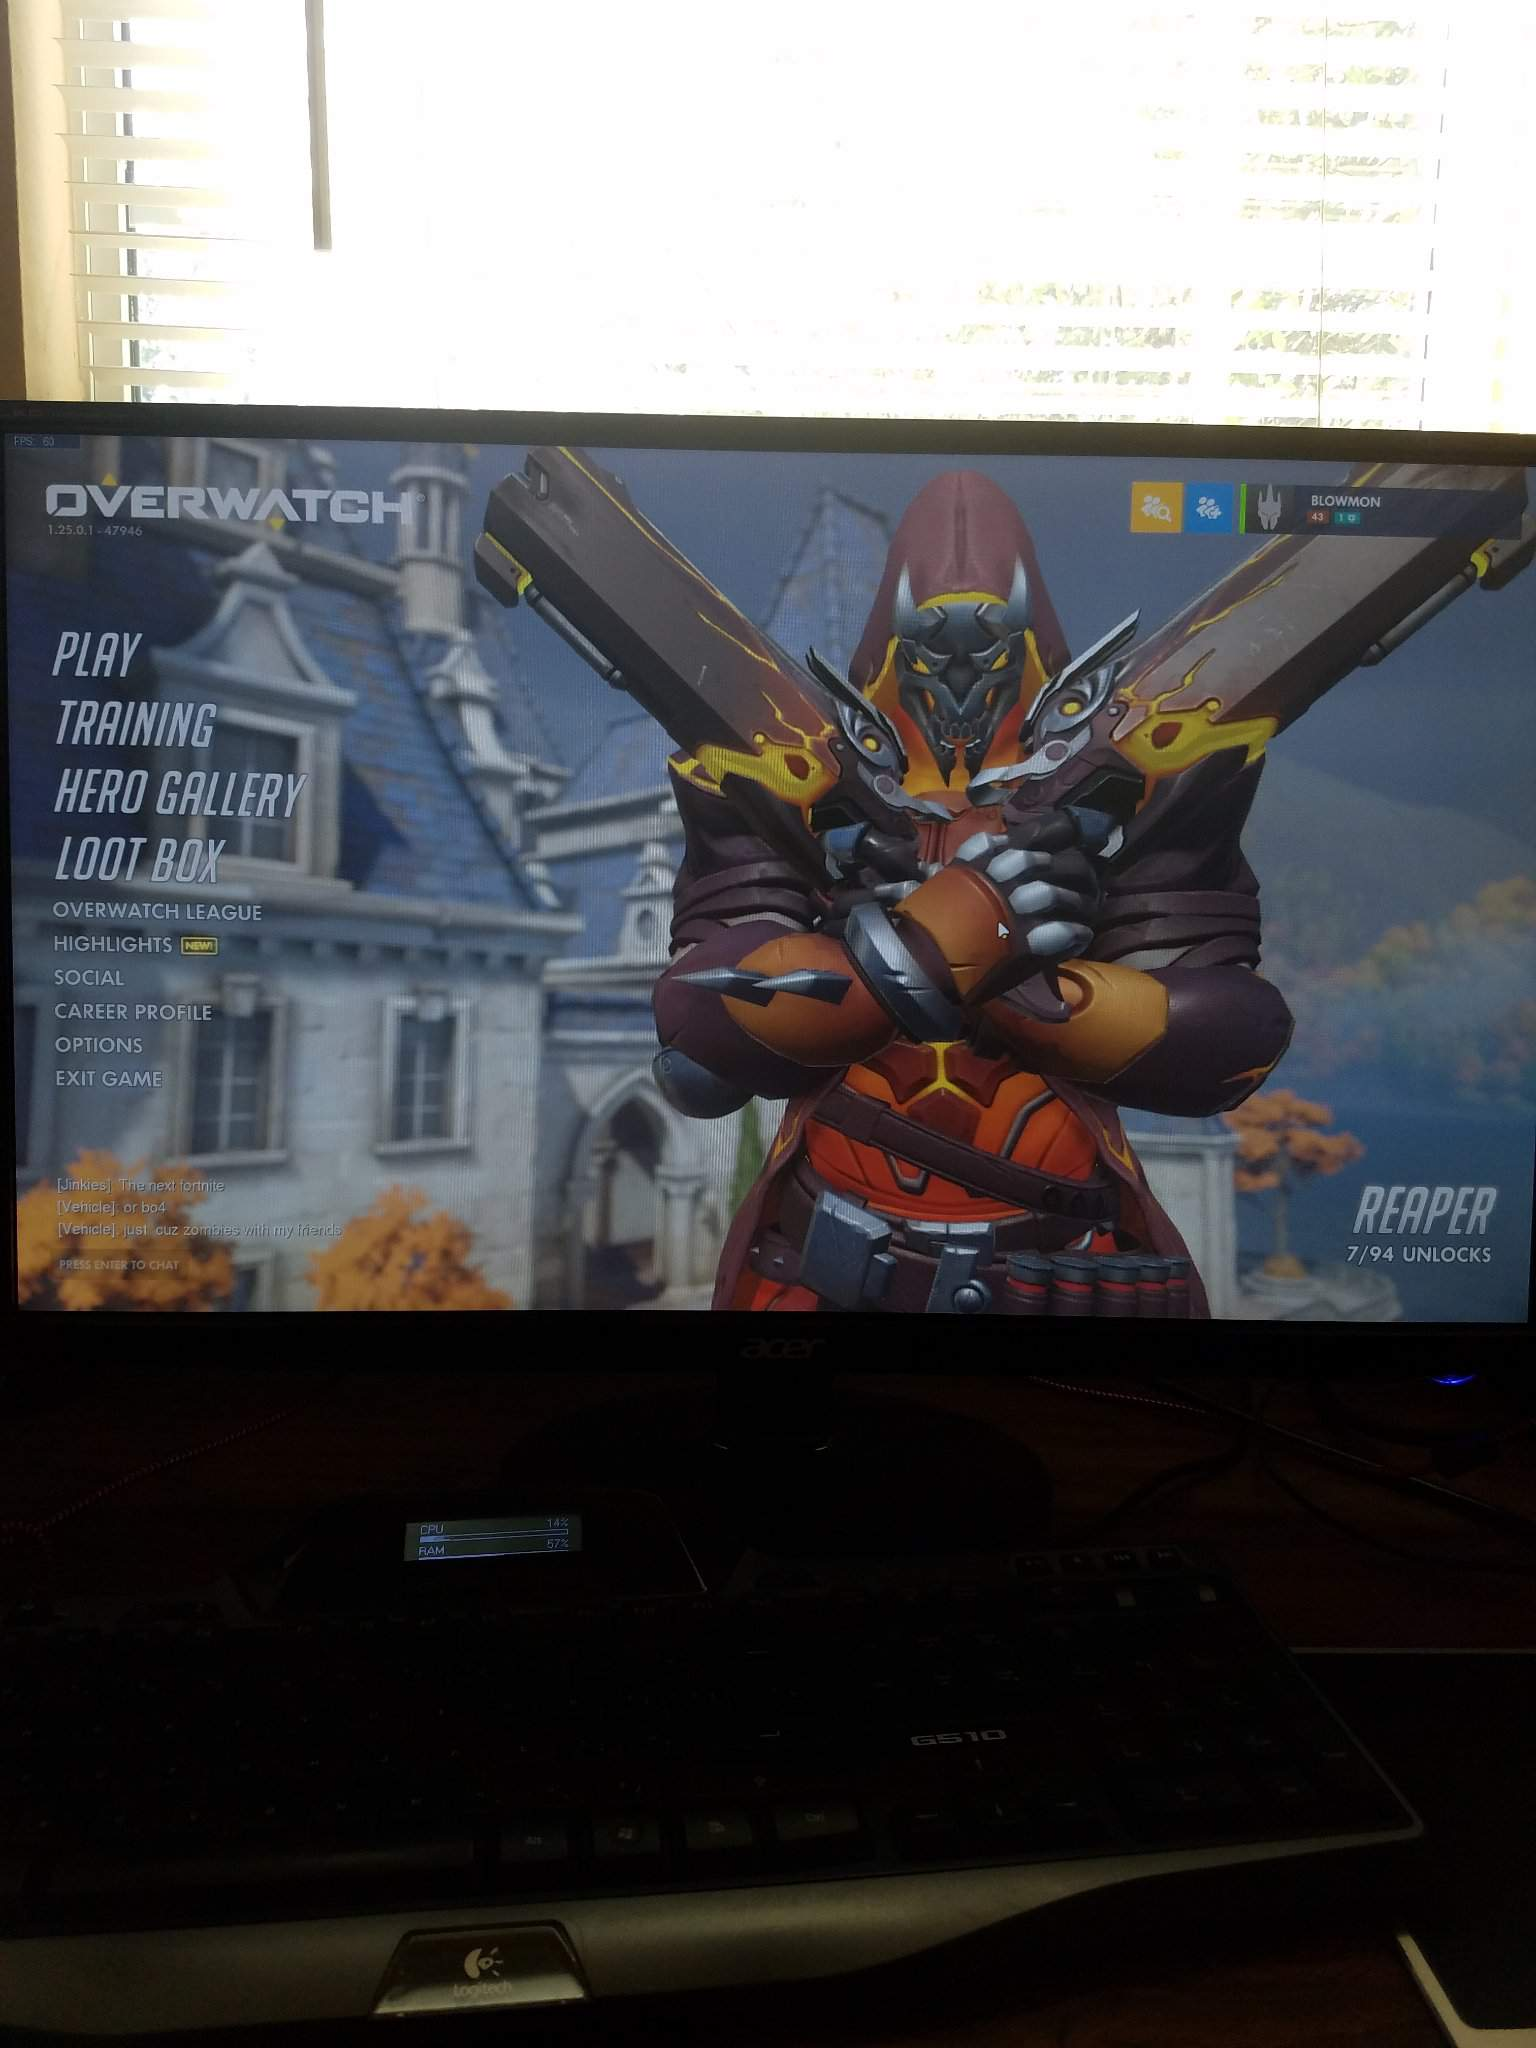 Follow me on twitch tv/Blowmon for overwatch | Overwatch Amino